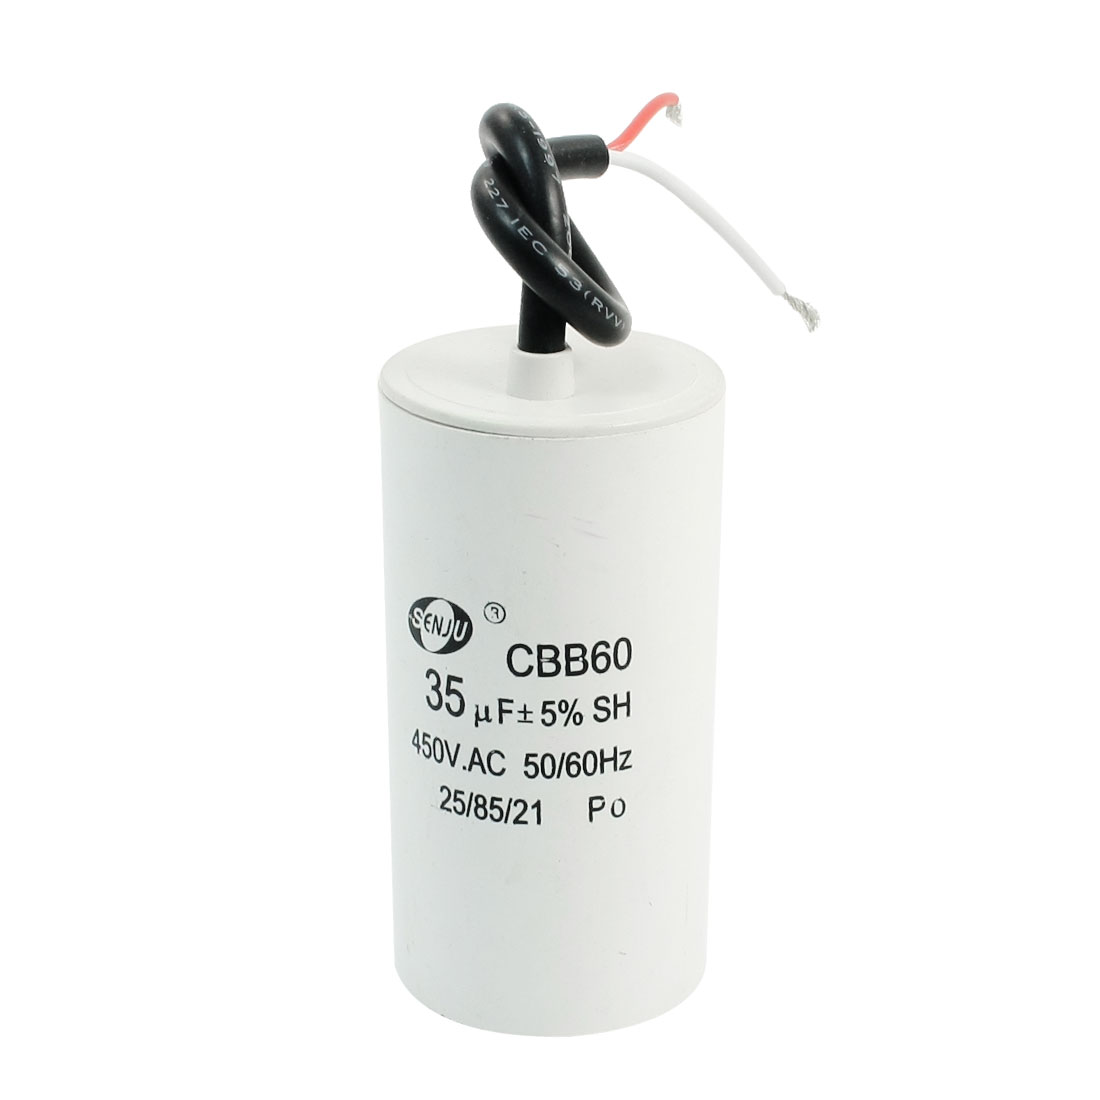 Wire Leads CBB60 AC 450V 35uF Polypropylene Capacitor for Appliance Motor